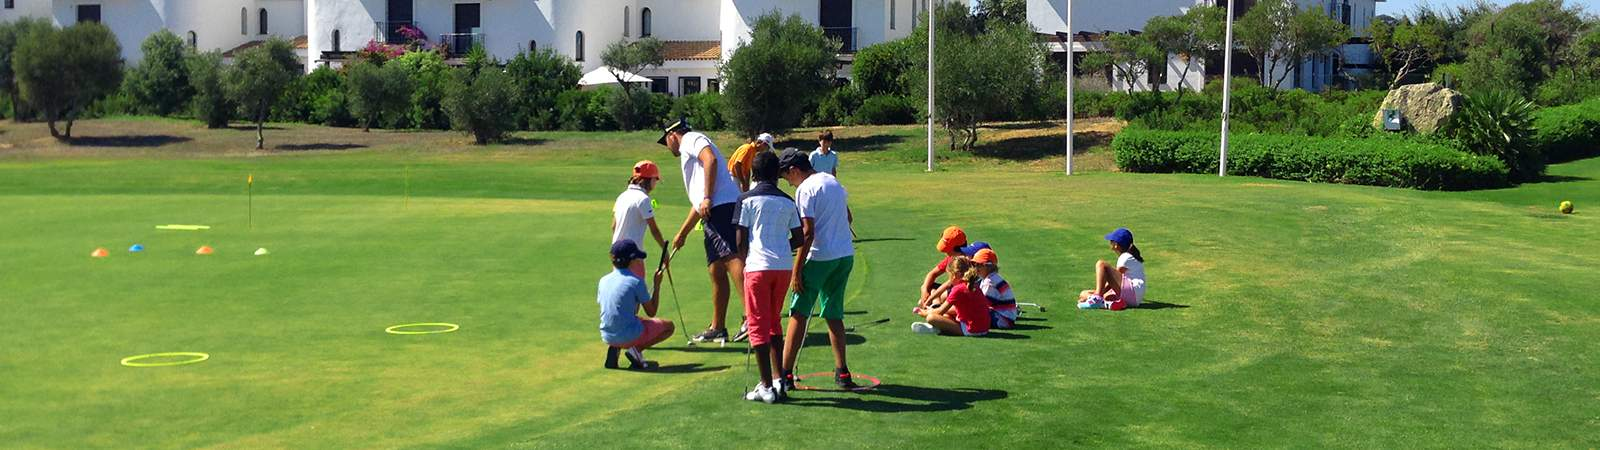 Imagen de Escuela de Golf | Alcaidesa Links Golf Resort